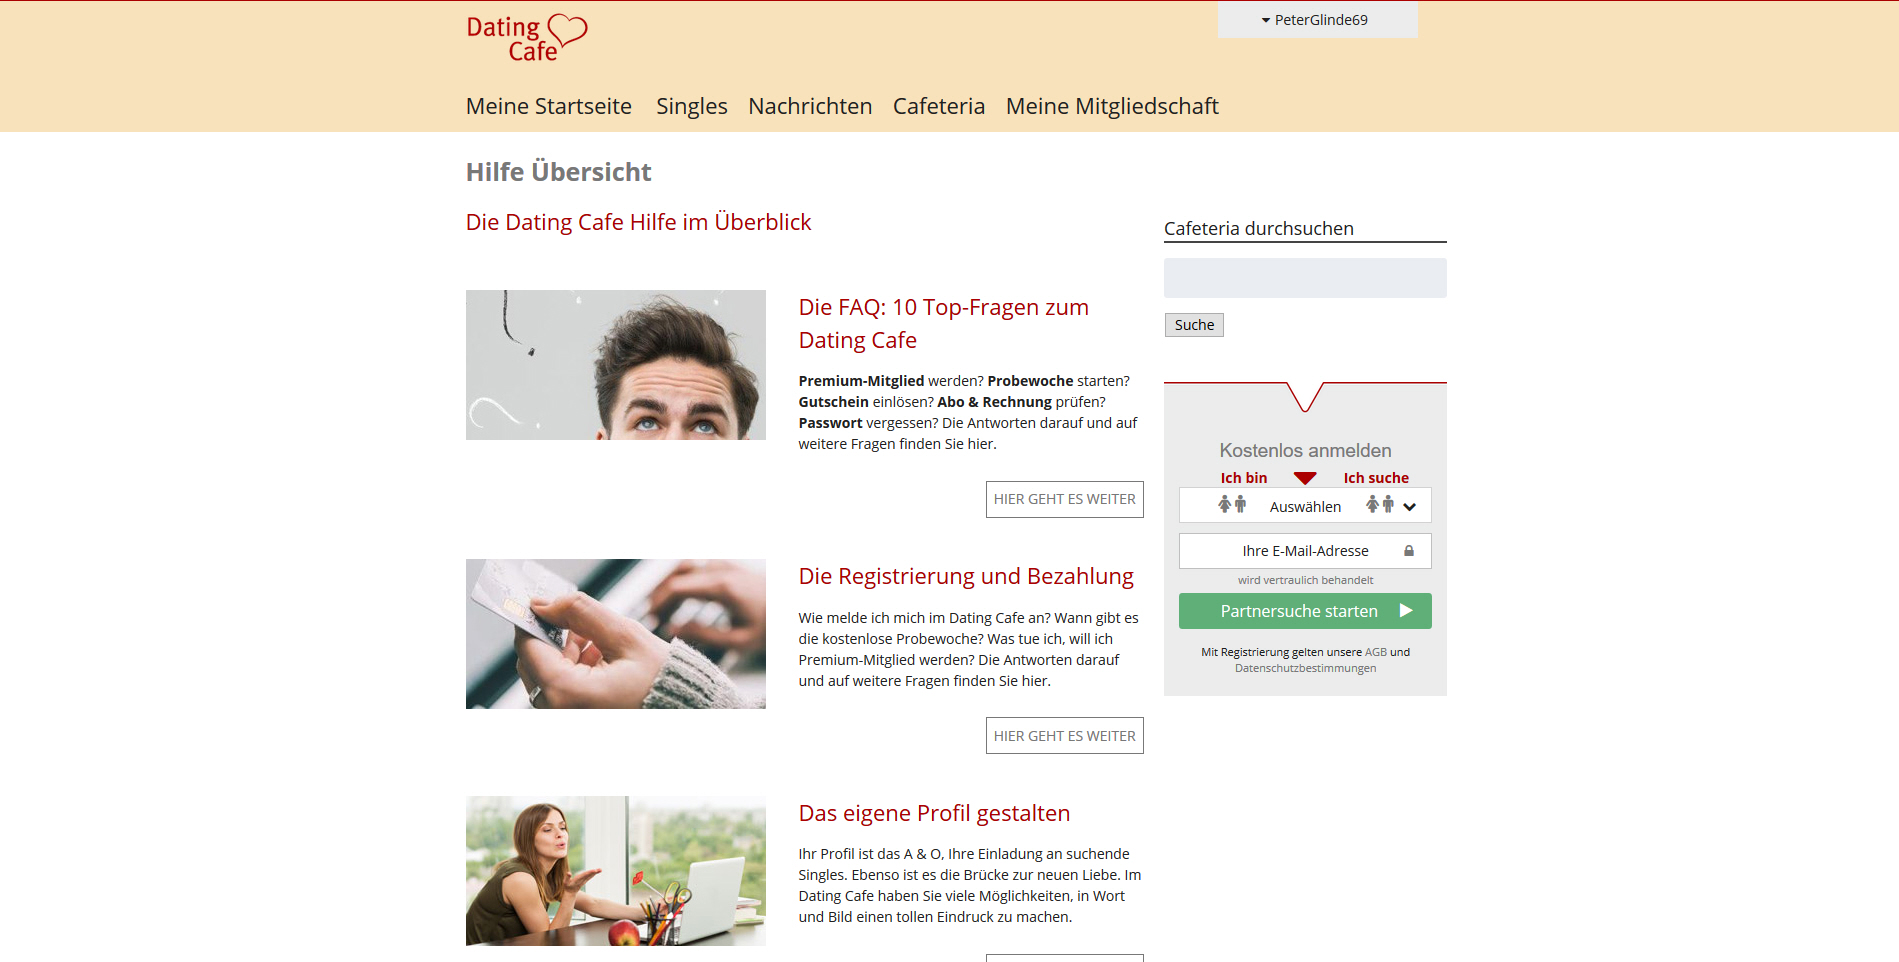 Dating cafe gmbh